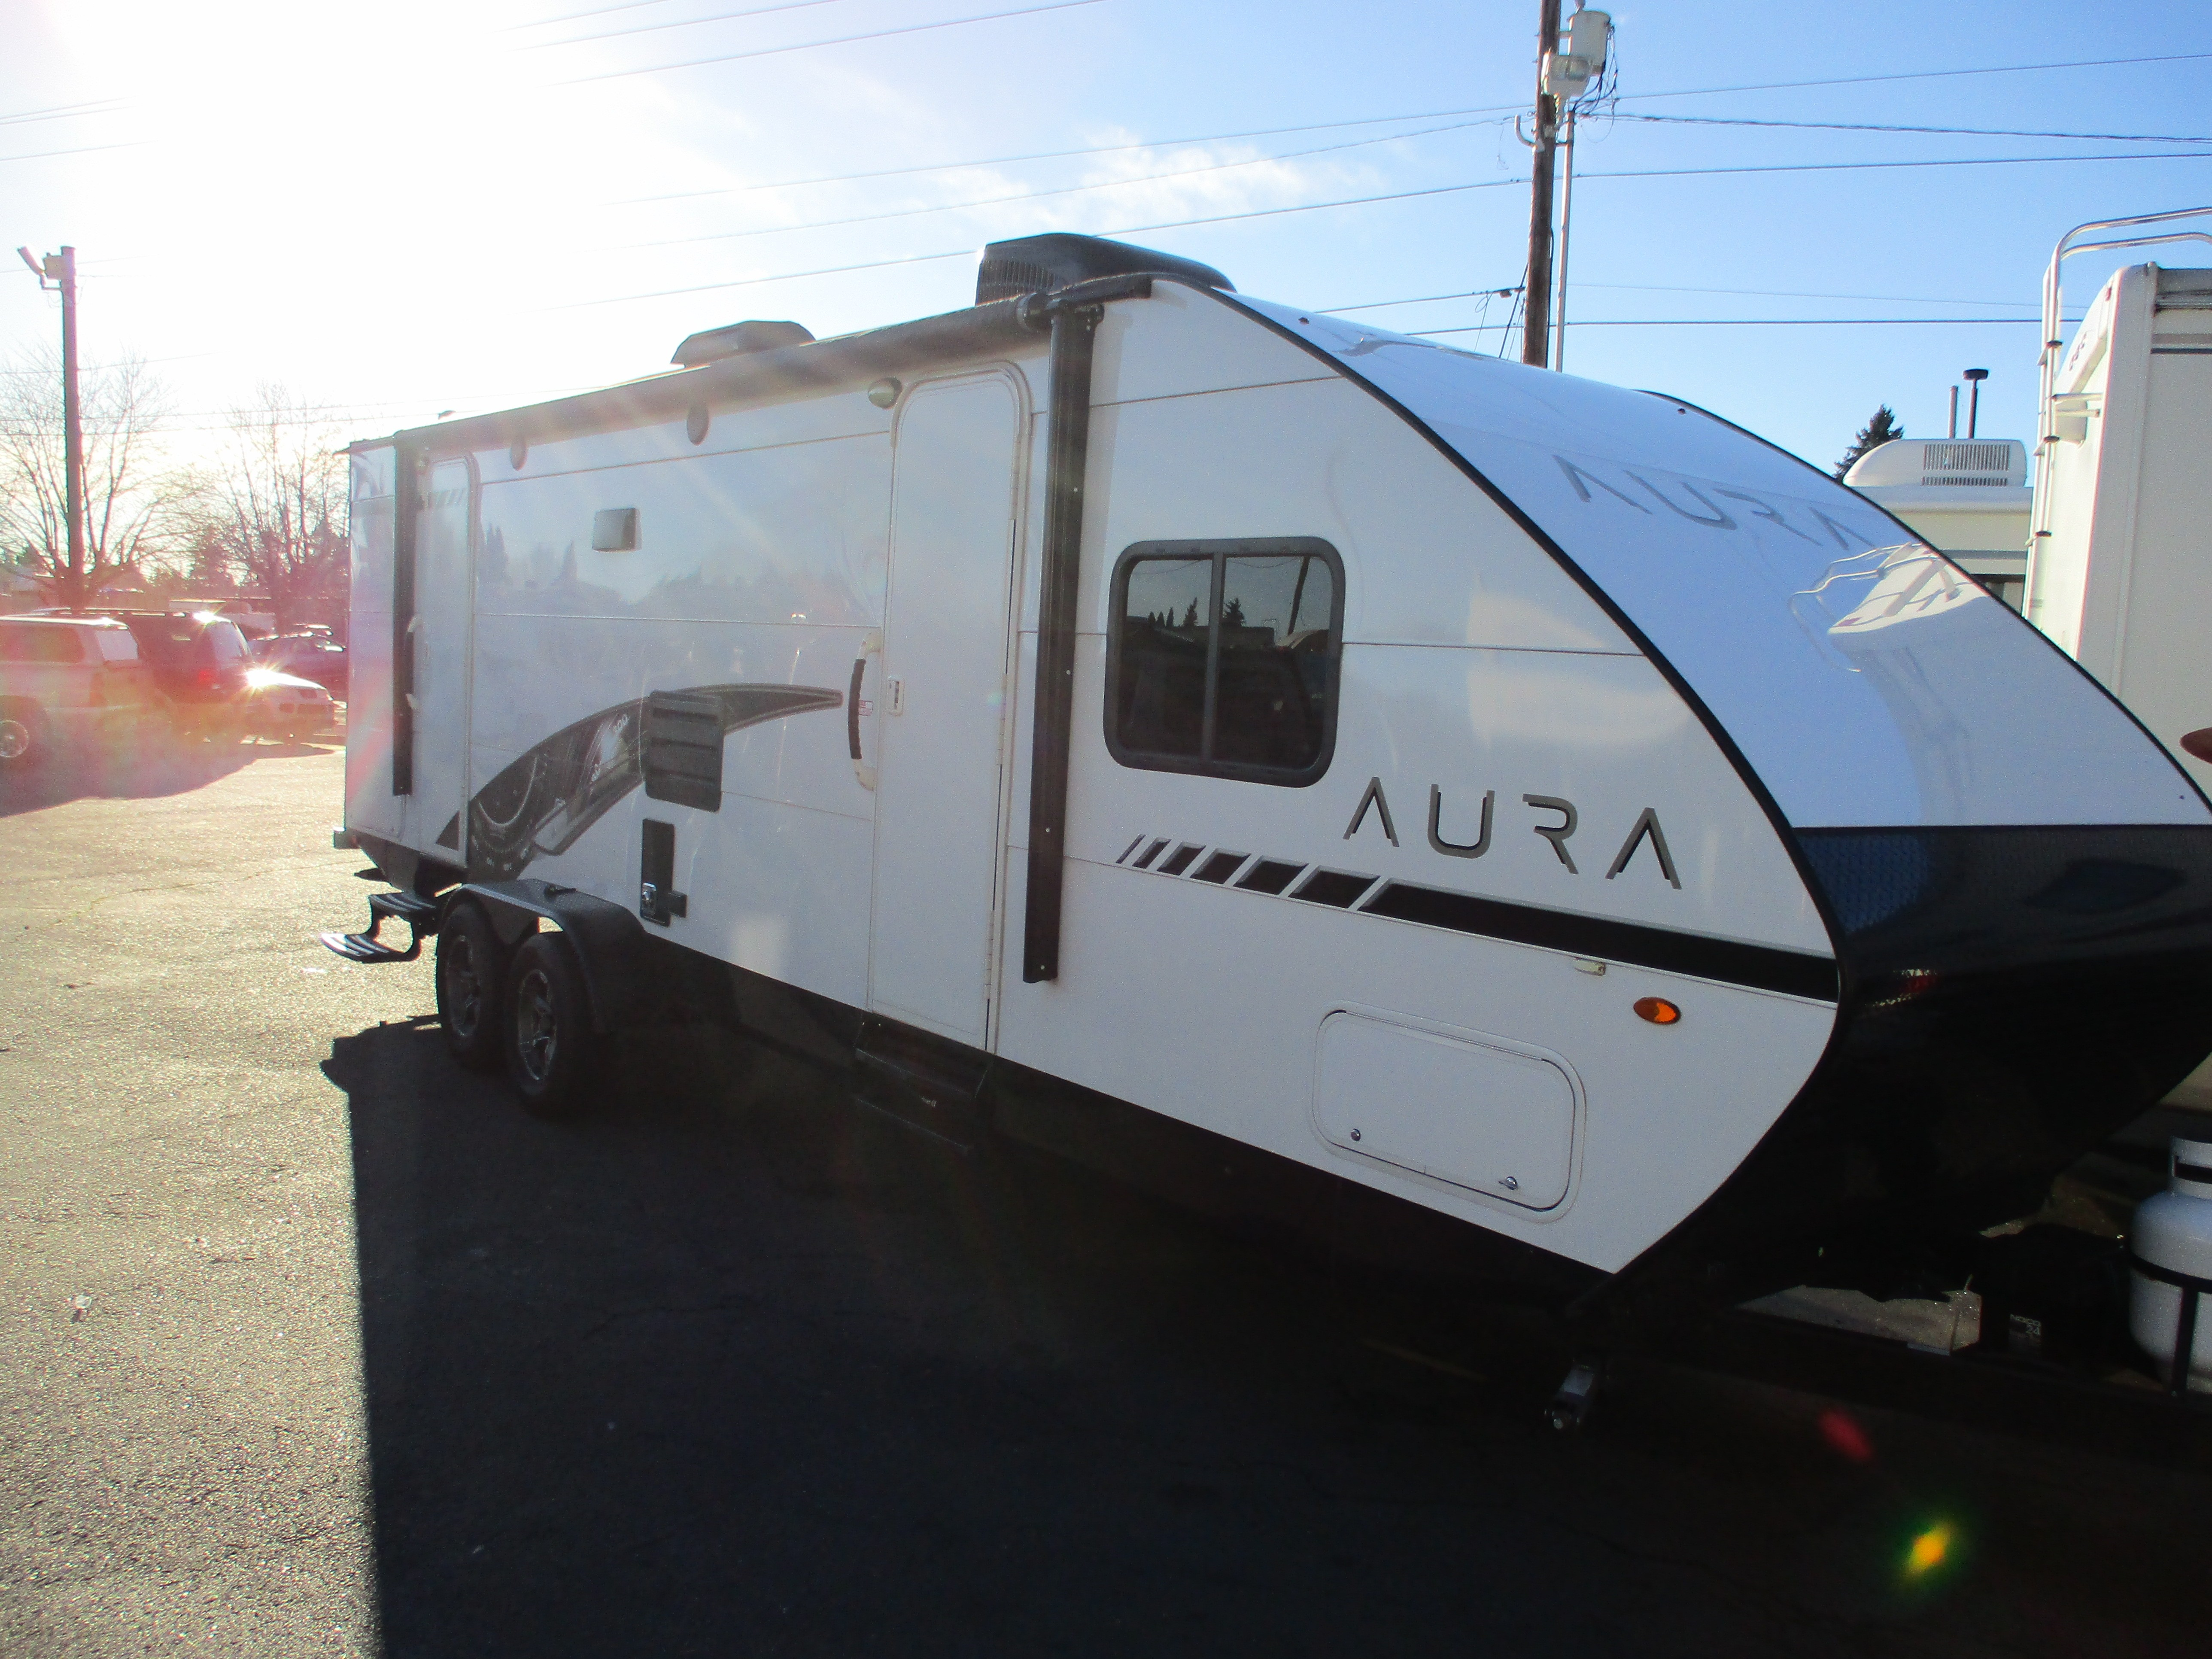 Used, 2019, Travel Lite, AURA, Travel Trailers